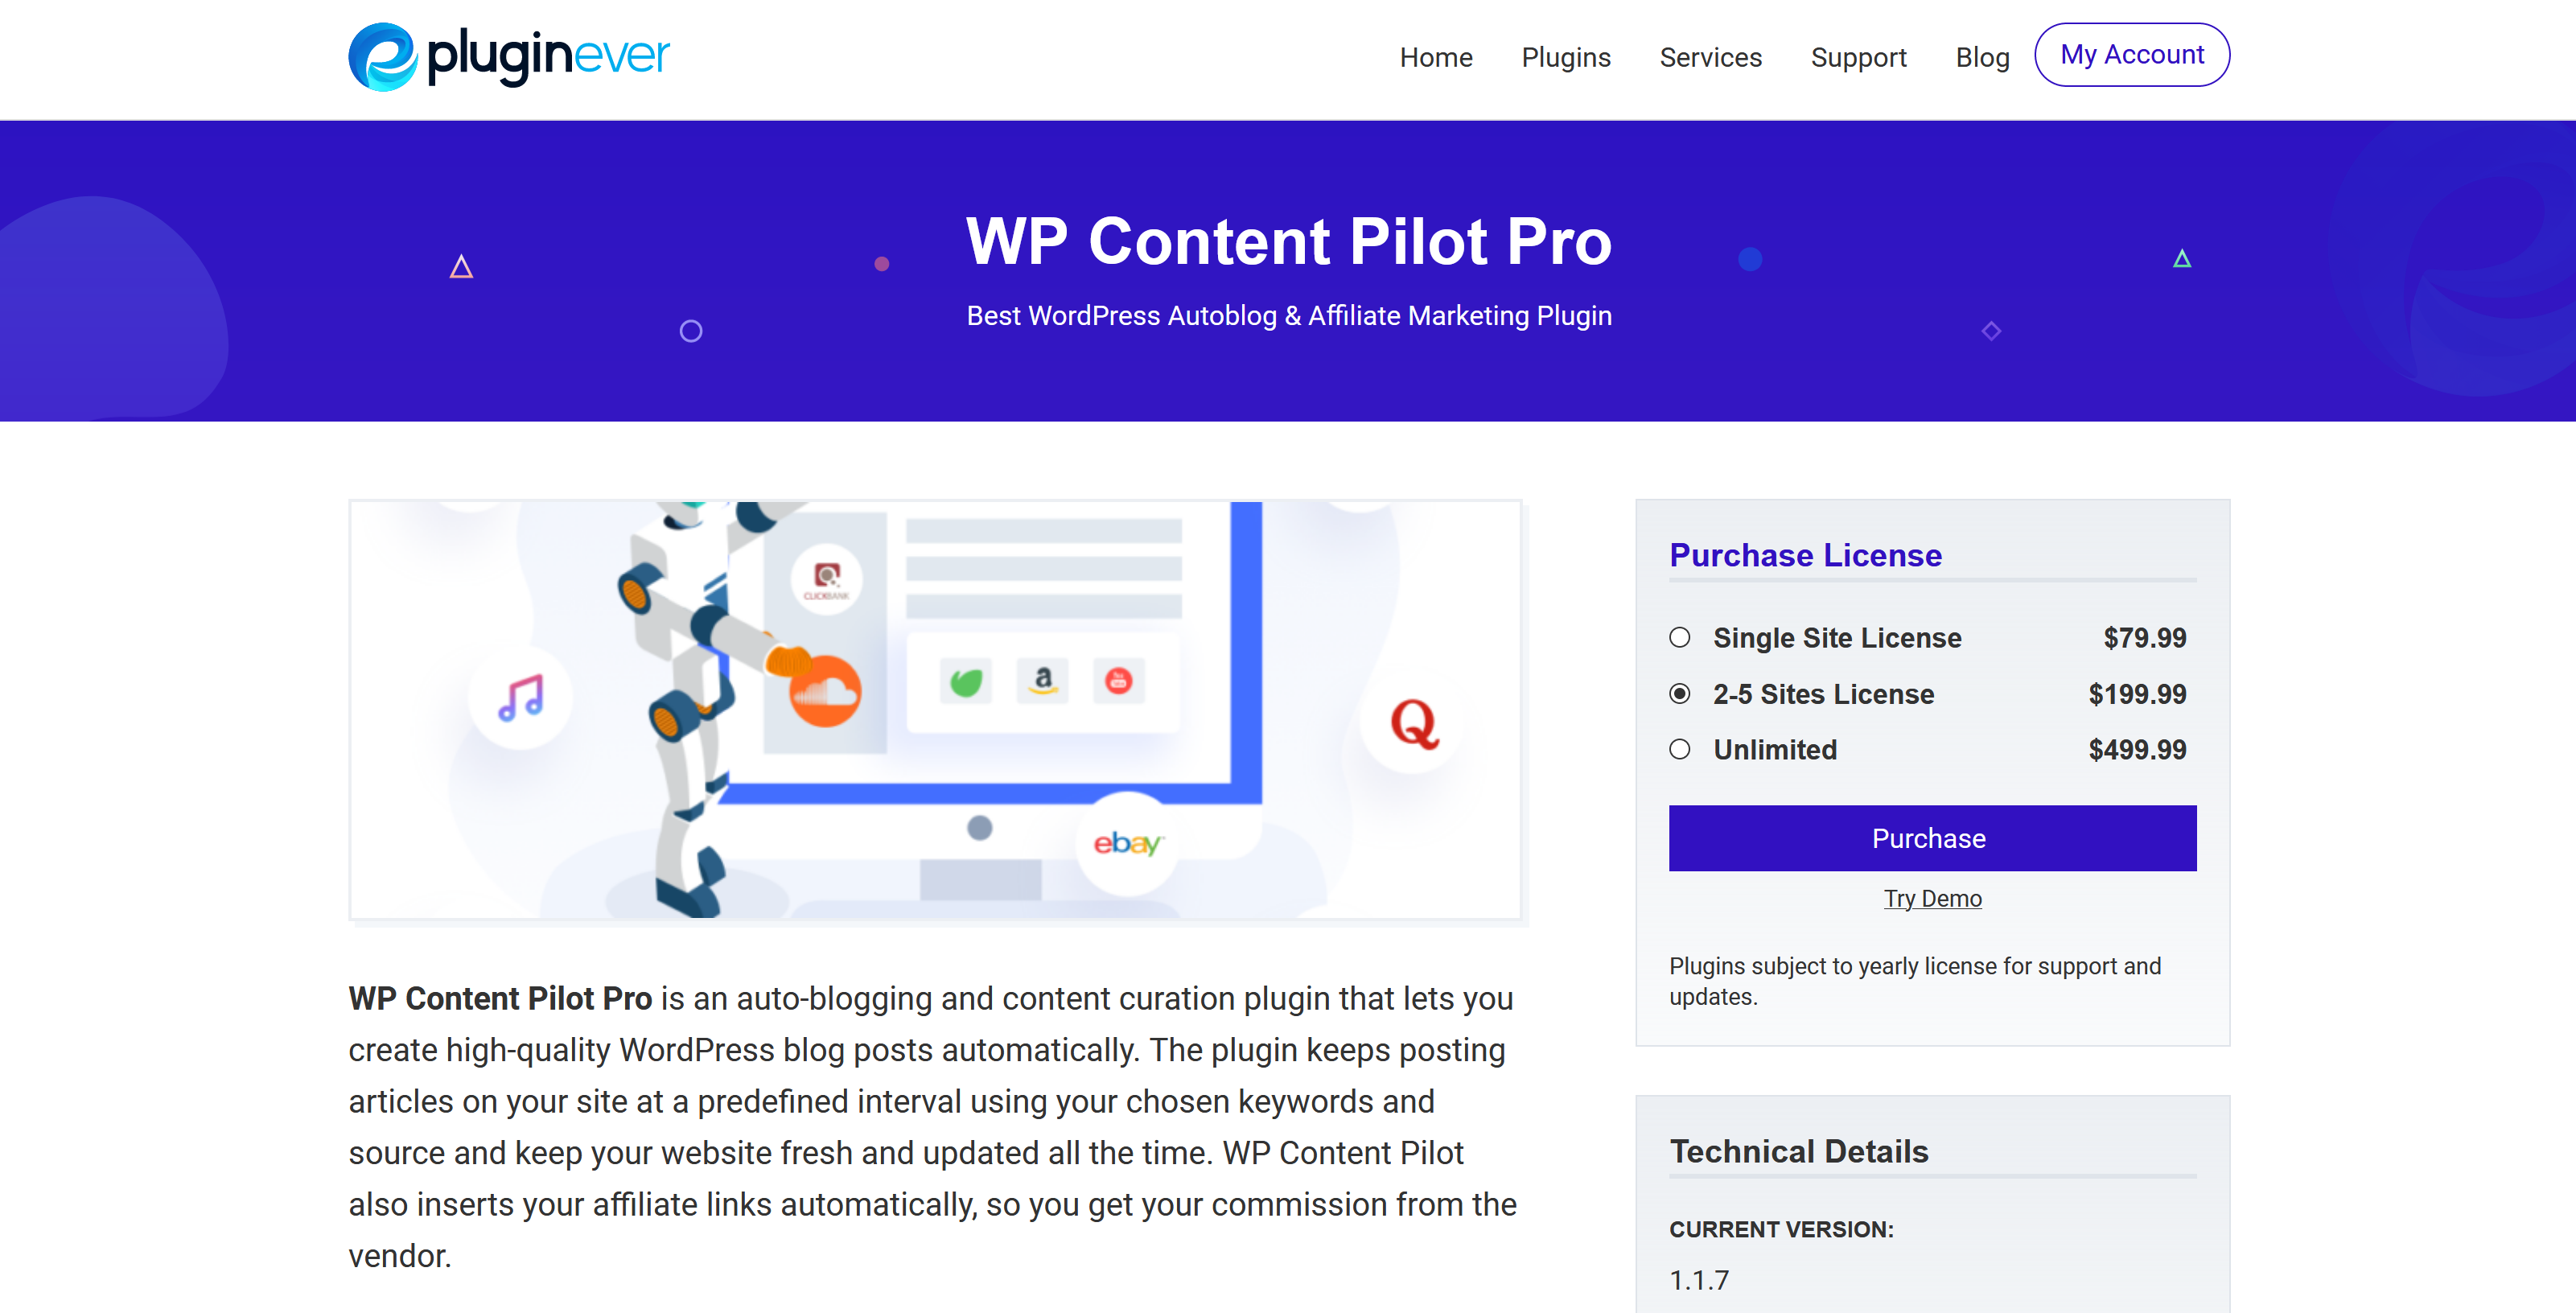 WP Content Pilot Pro 1.1.7 – Best WordPress Autoblog & Affiliate Marketing Plugin